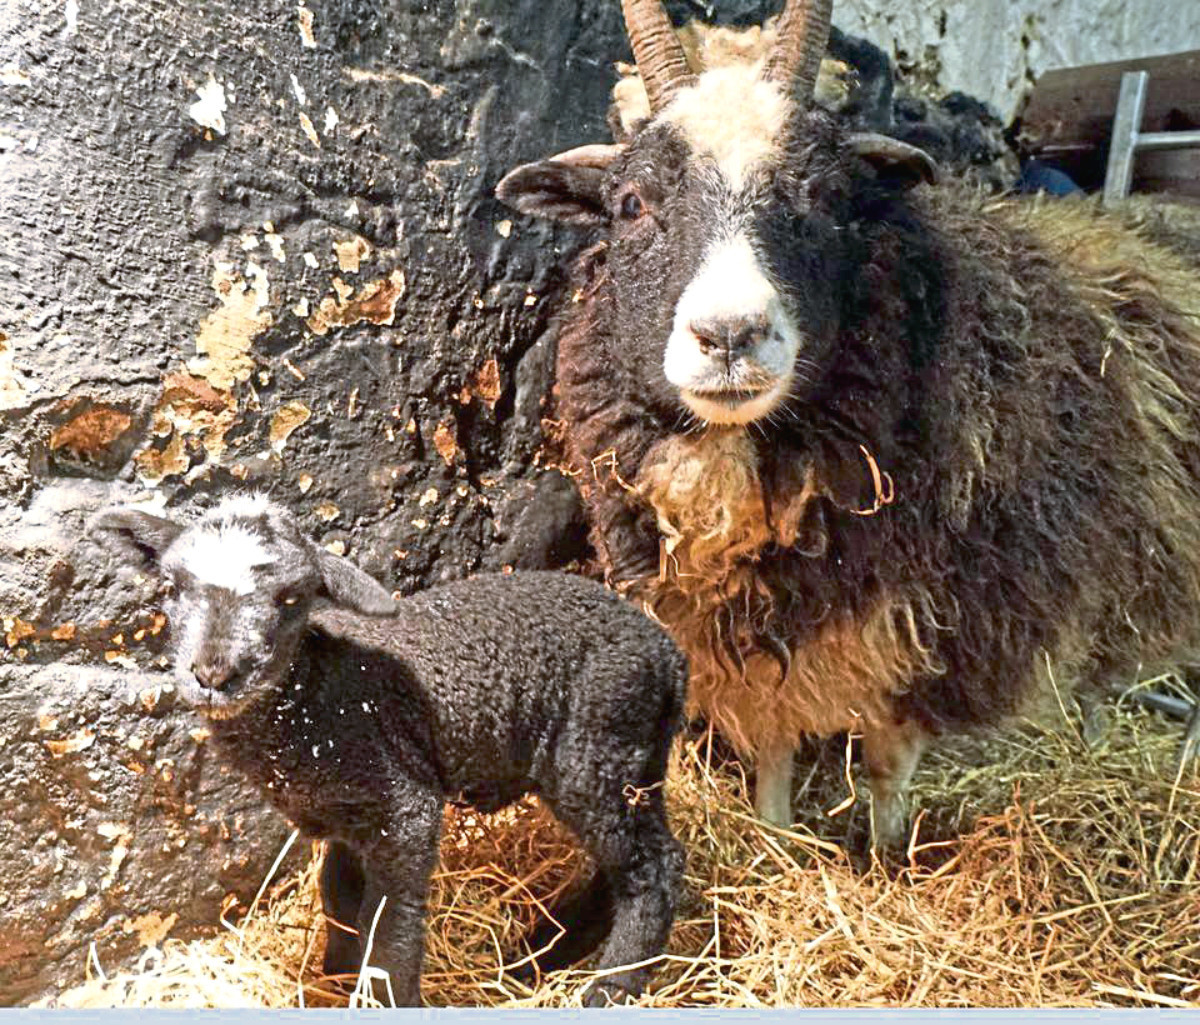 Two of Willows Animal Sanctuary's residents, a baby lamb and its mother.